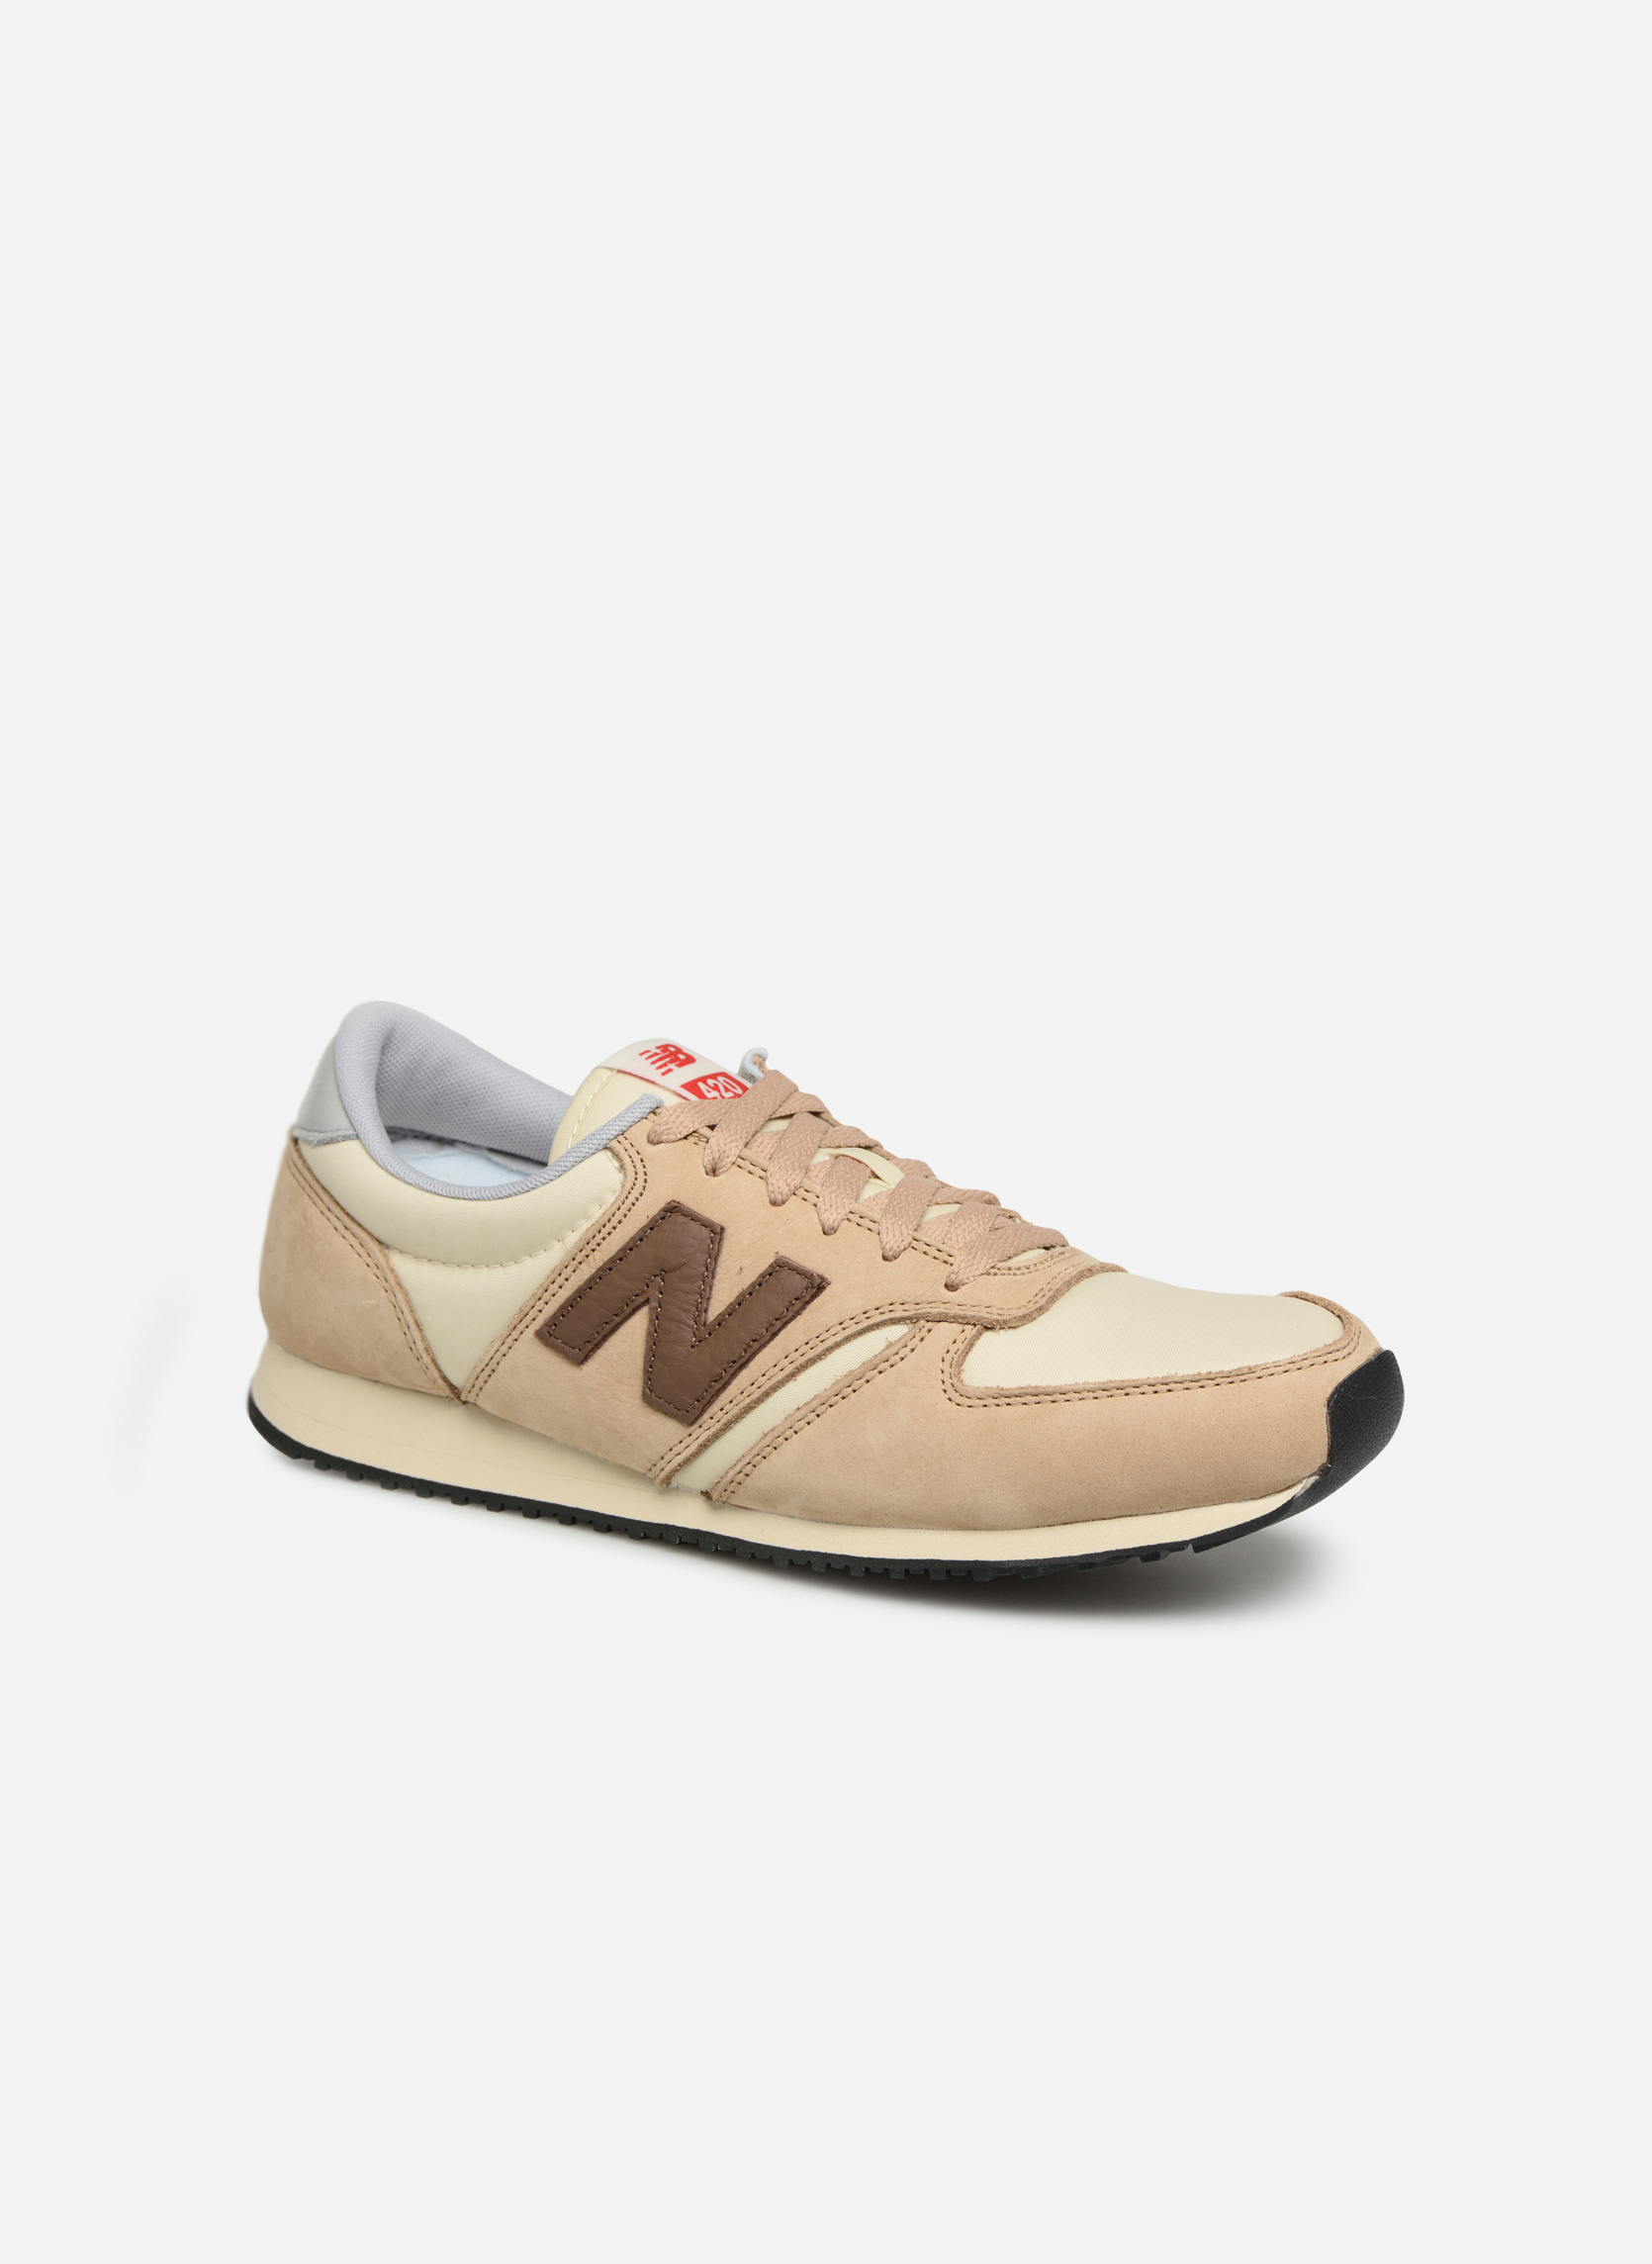 Sneakers New Balance Beige